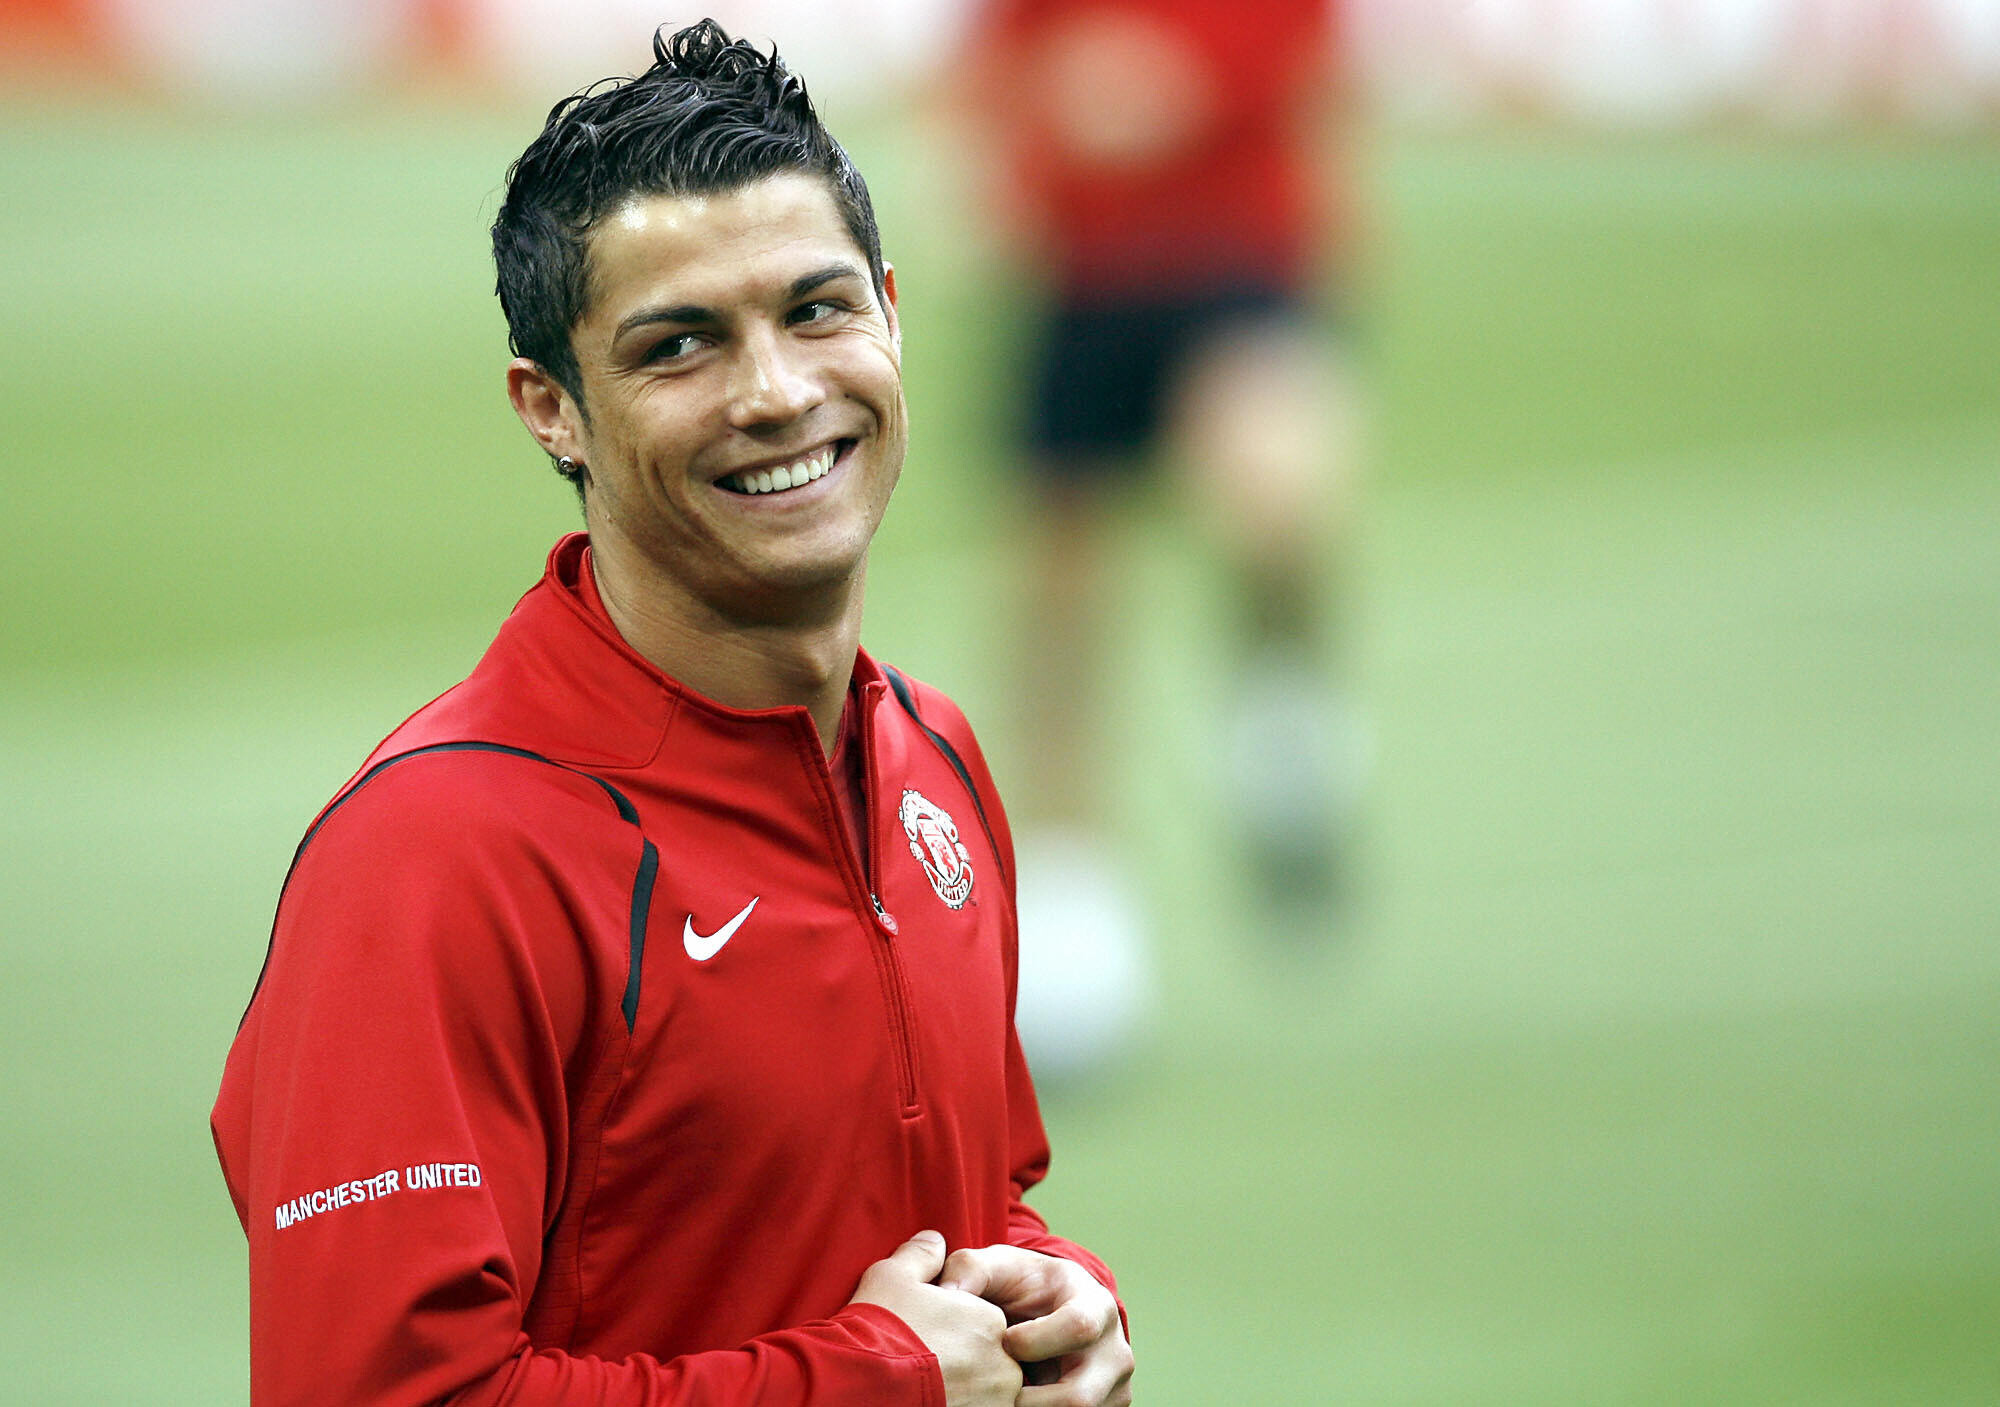 Manchester United set to re-sign Cristiano Ronaldo after reaching agreement with Juventus